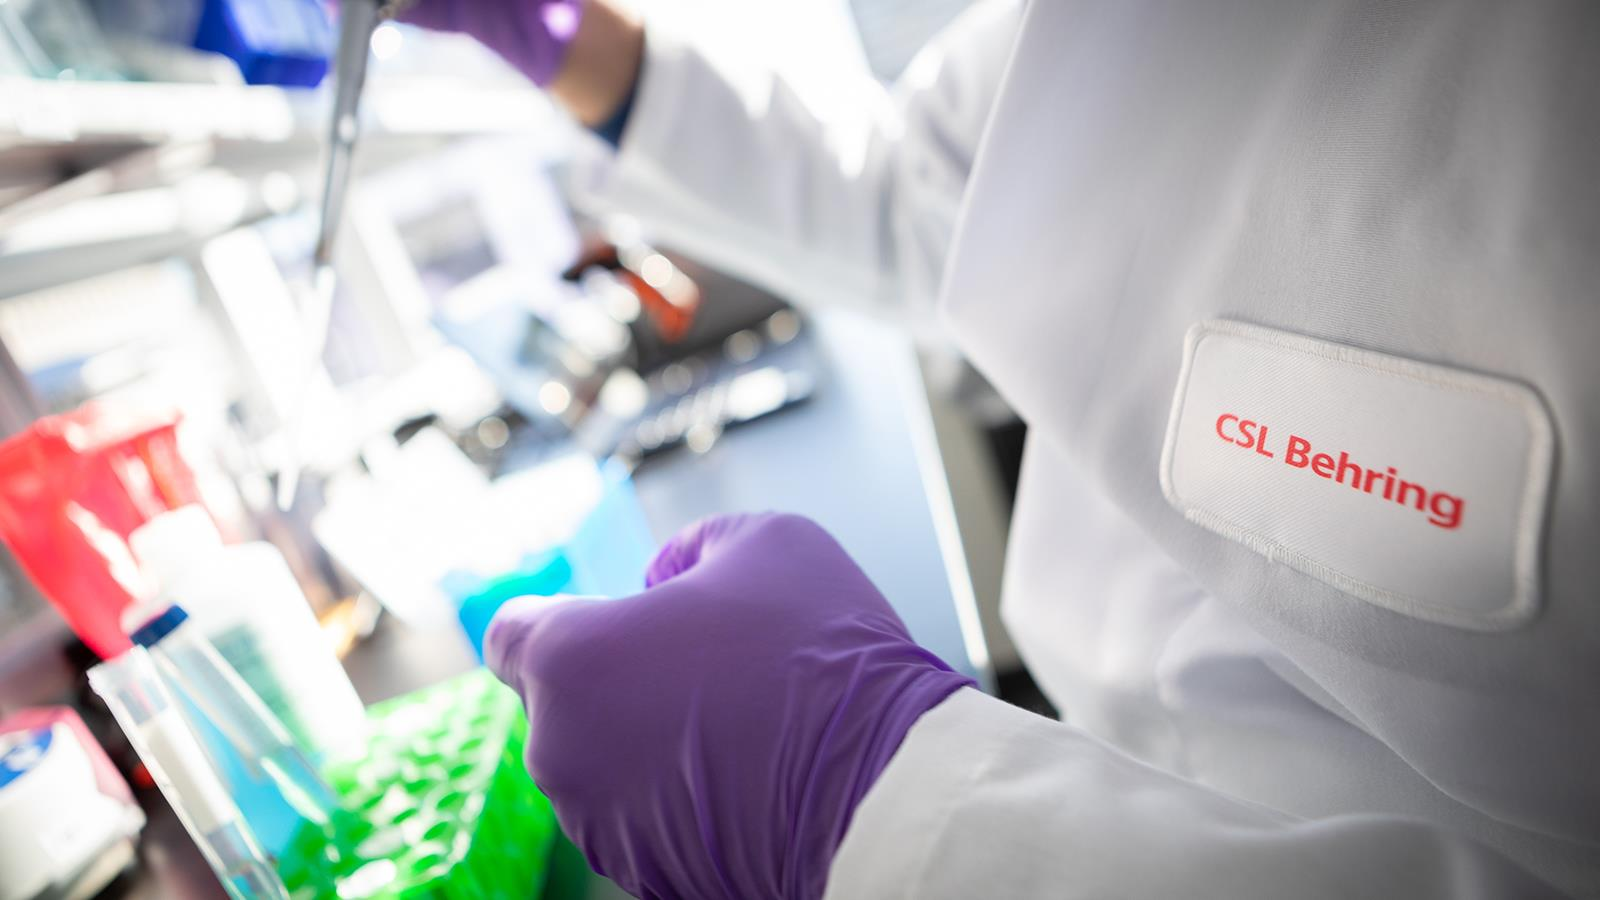 Gloved hands of a CSL Behring researcher in the lab